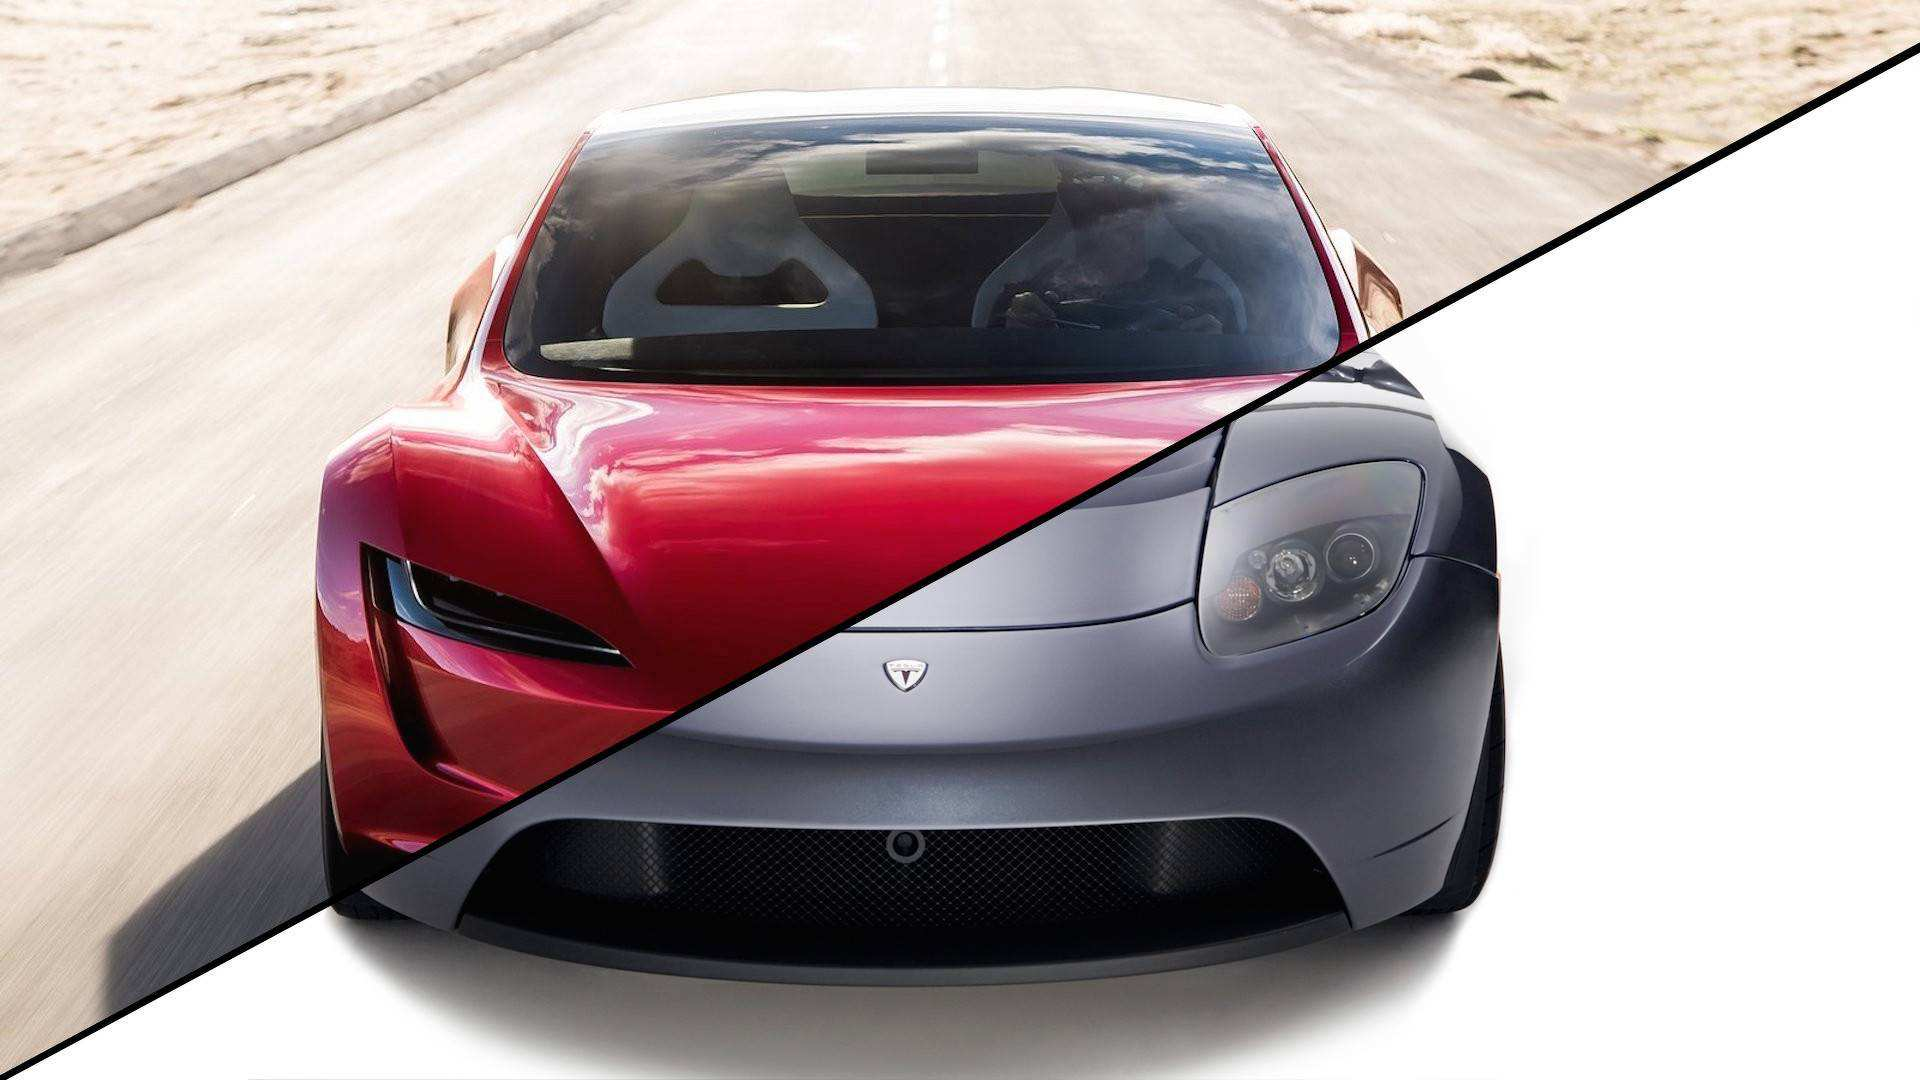 48 Concept of 2020 Tesla Roadster Dimensions Speed Test by 2020 Tesla Roadster Dimensions